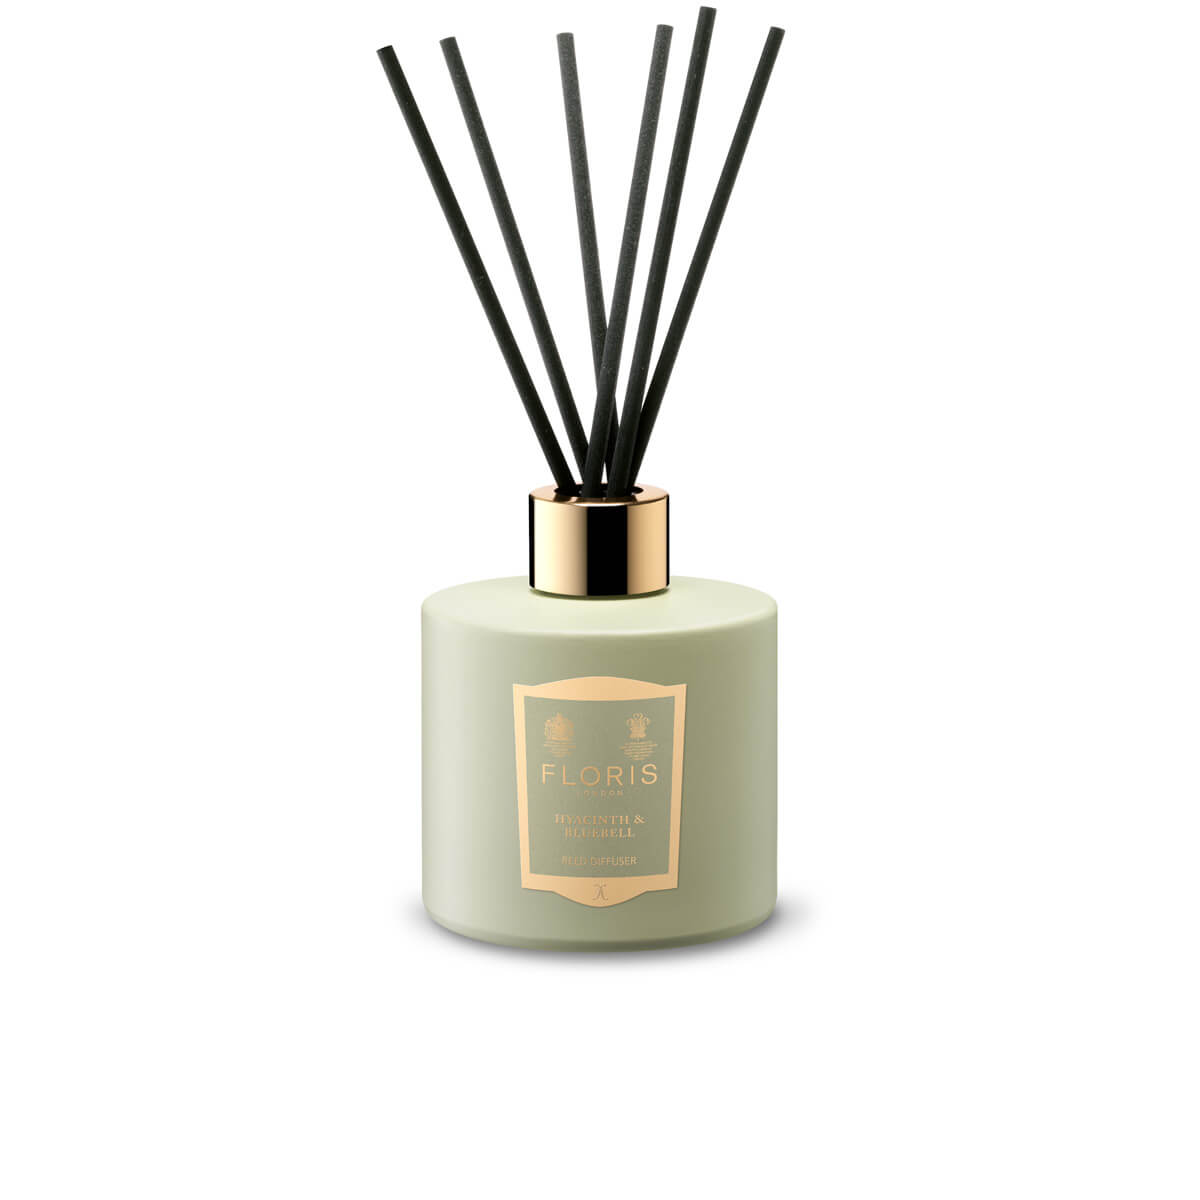 Hyacinth & Bluebell - Scented Reed Diffuser